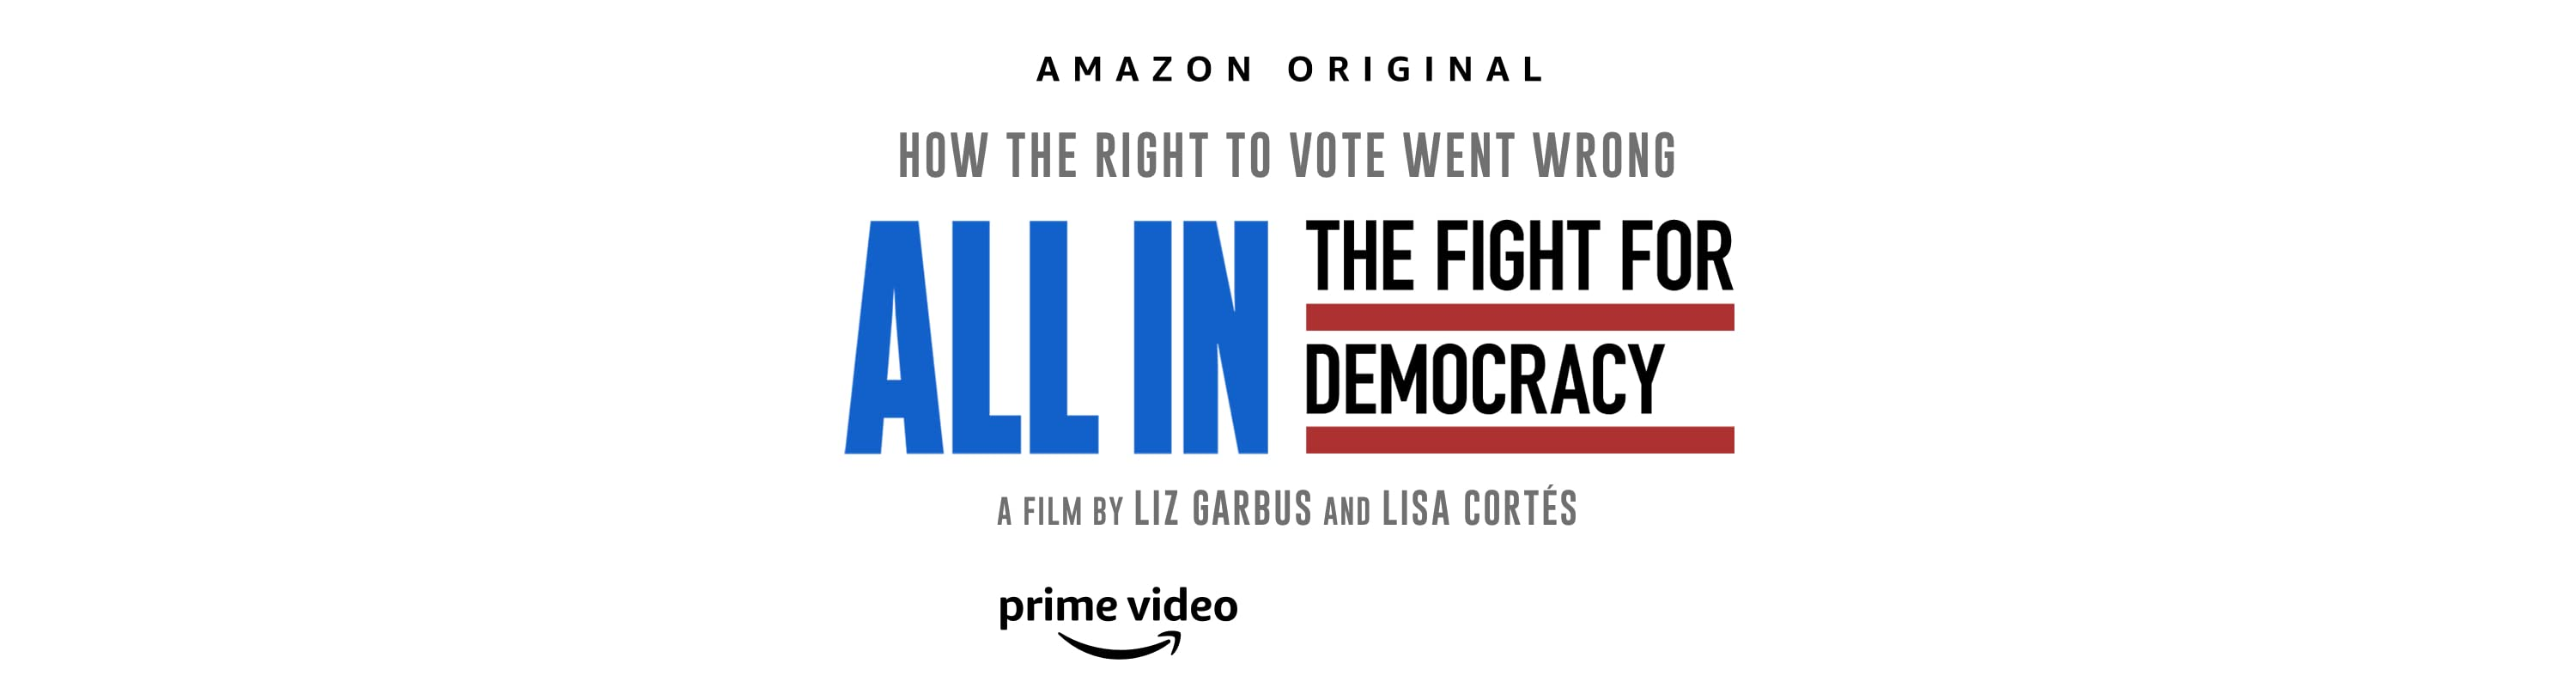 Amazon Original - All In The Fight for Democracy.  A film by Liz Garbus and Liza Cortés on Prime Video.